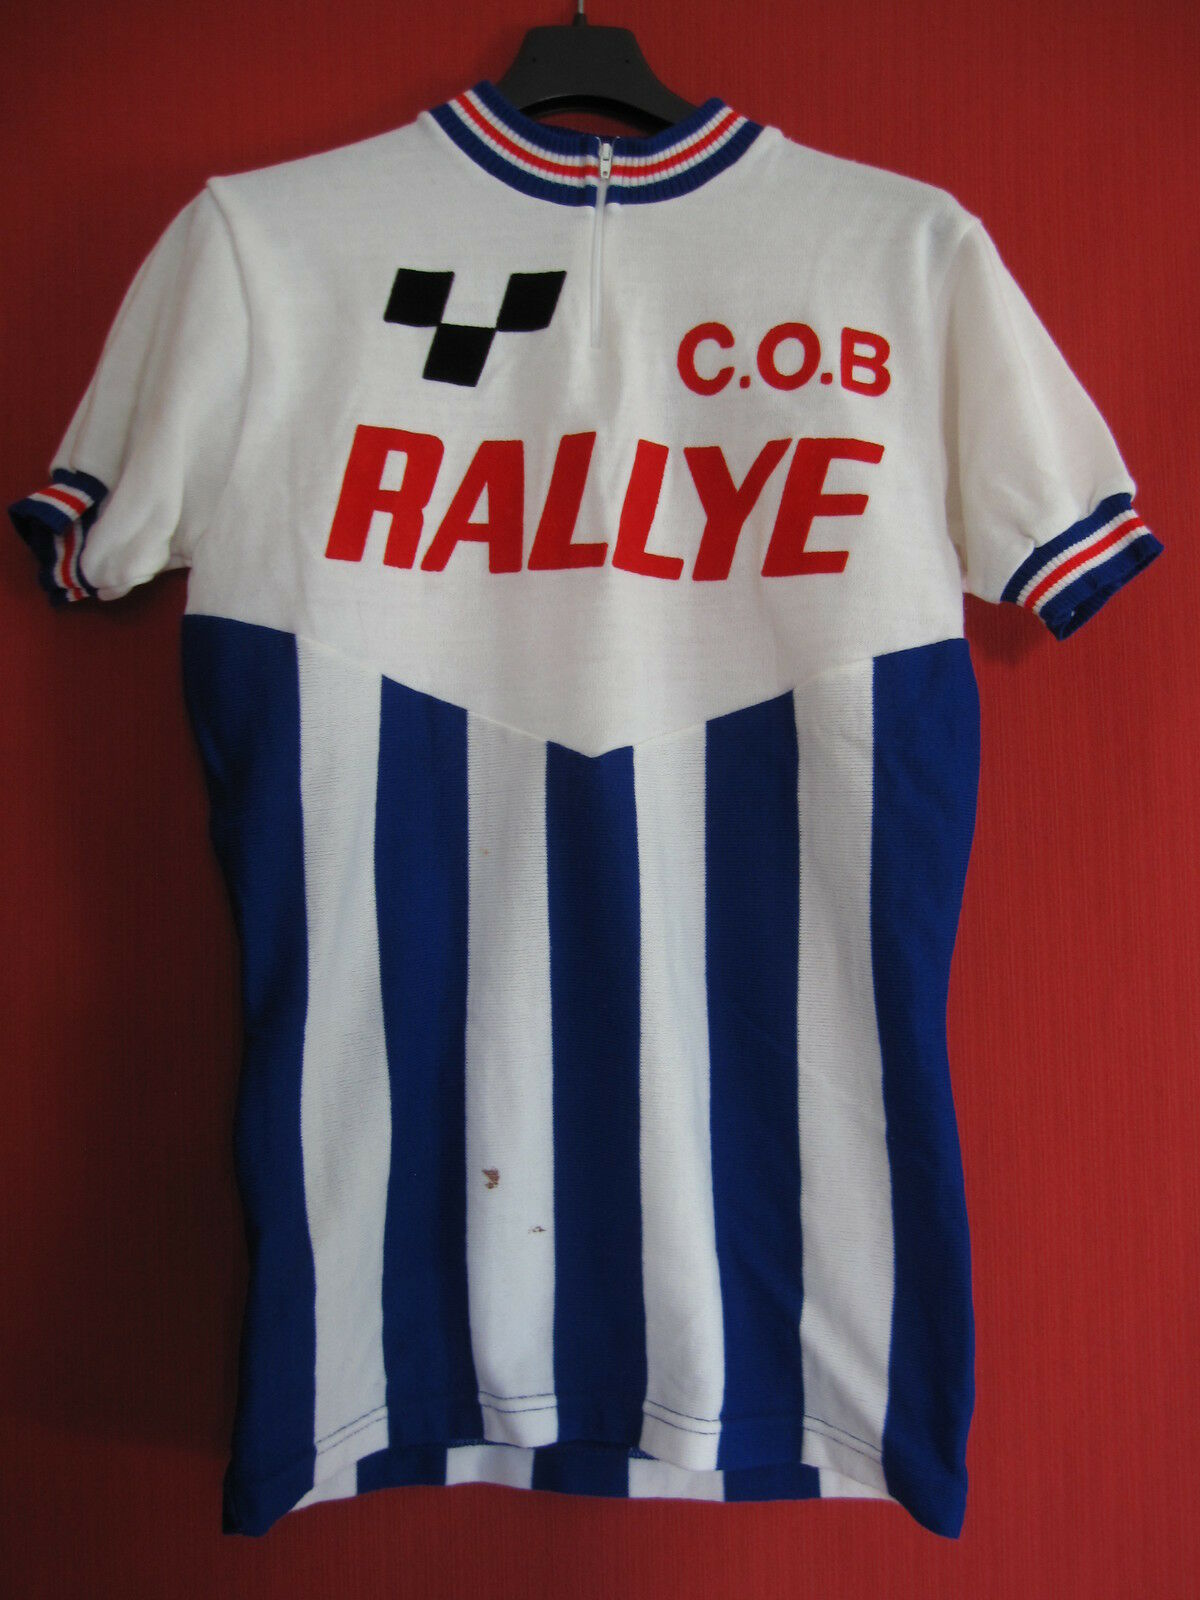 Maillot cycliste COB Rallye Vintage cycling jersey Jersey 70'S Acrylique - M